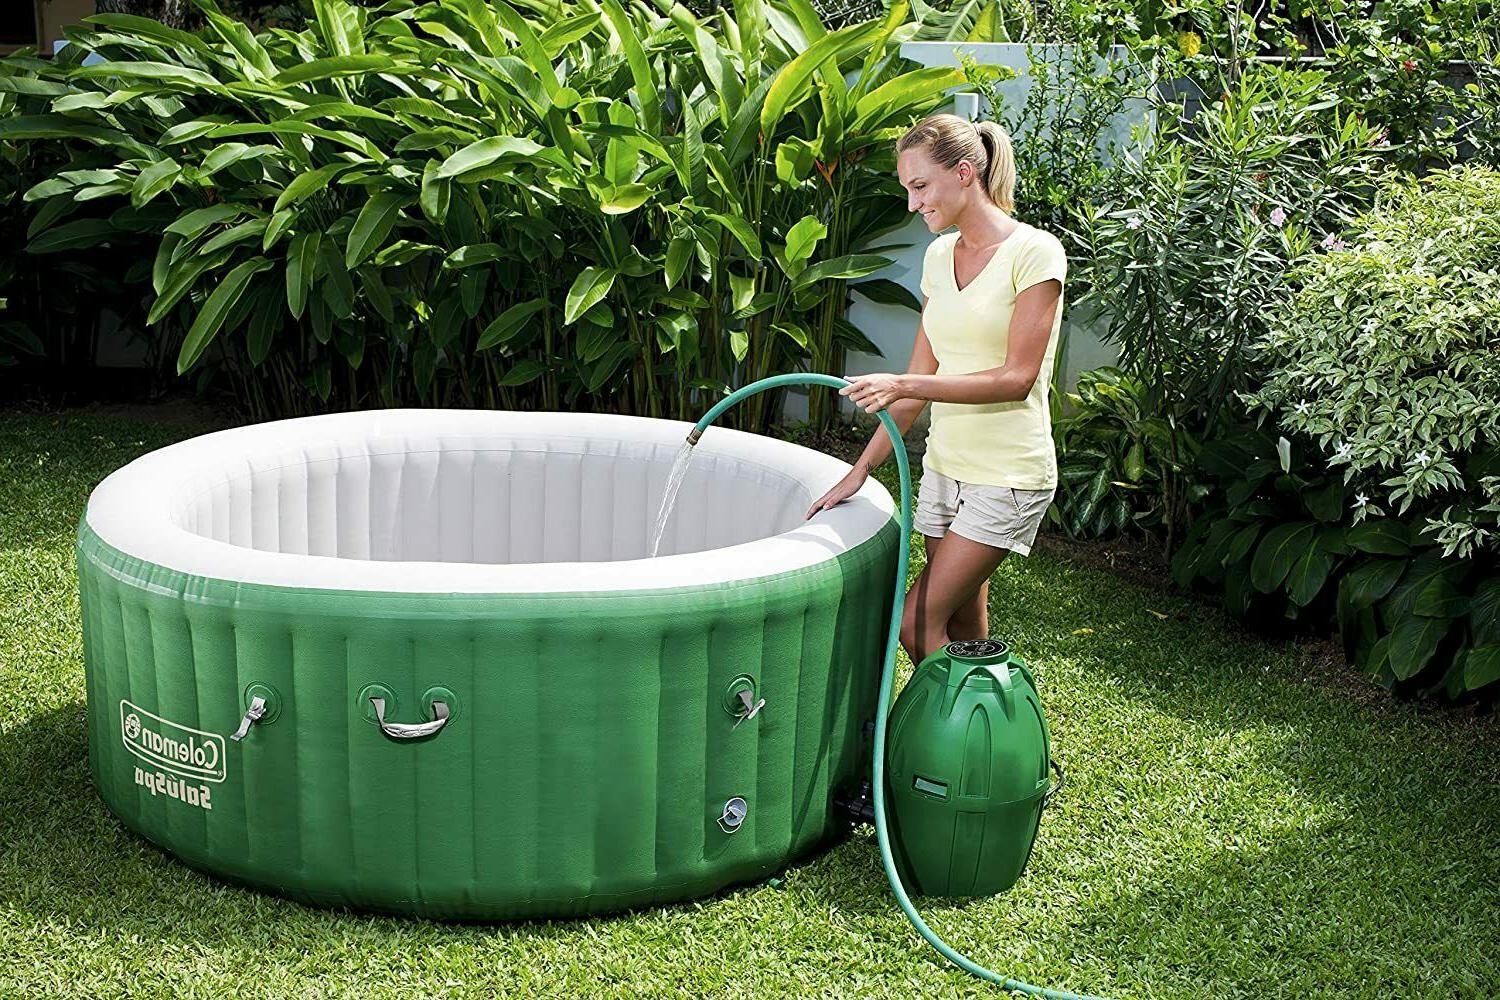 "Coleman Tub 28"" JACUZZI 54131E IN HAND"